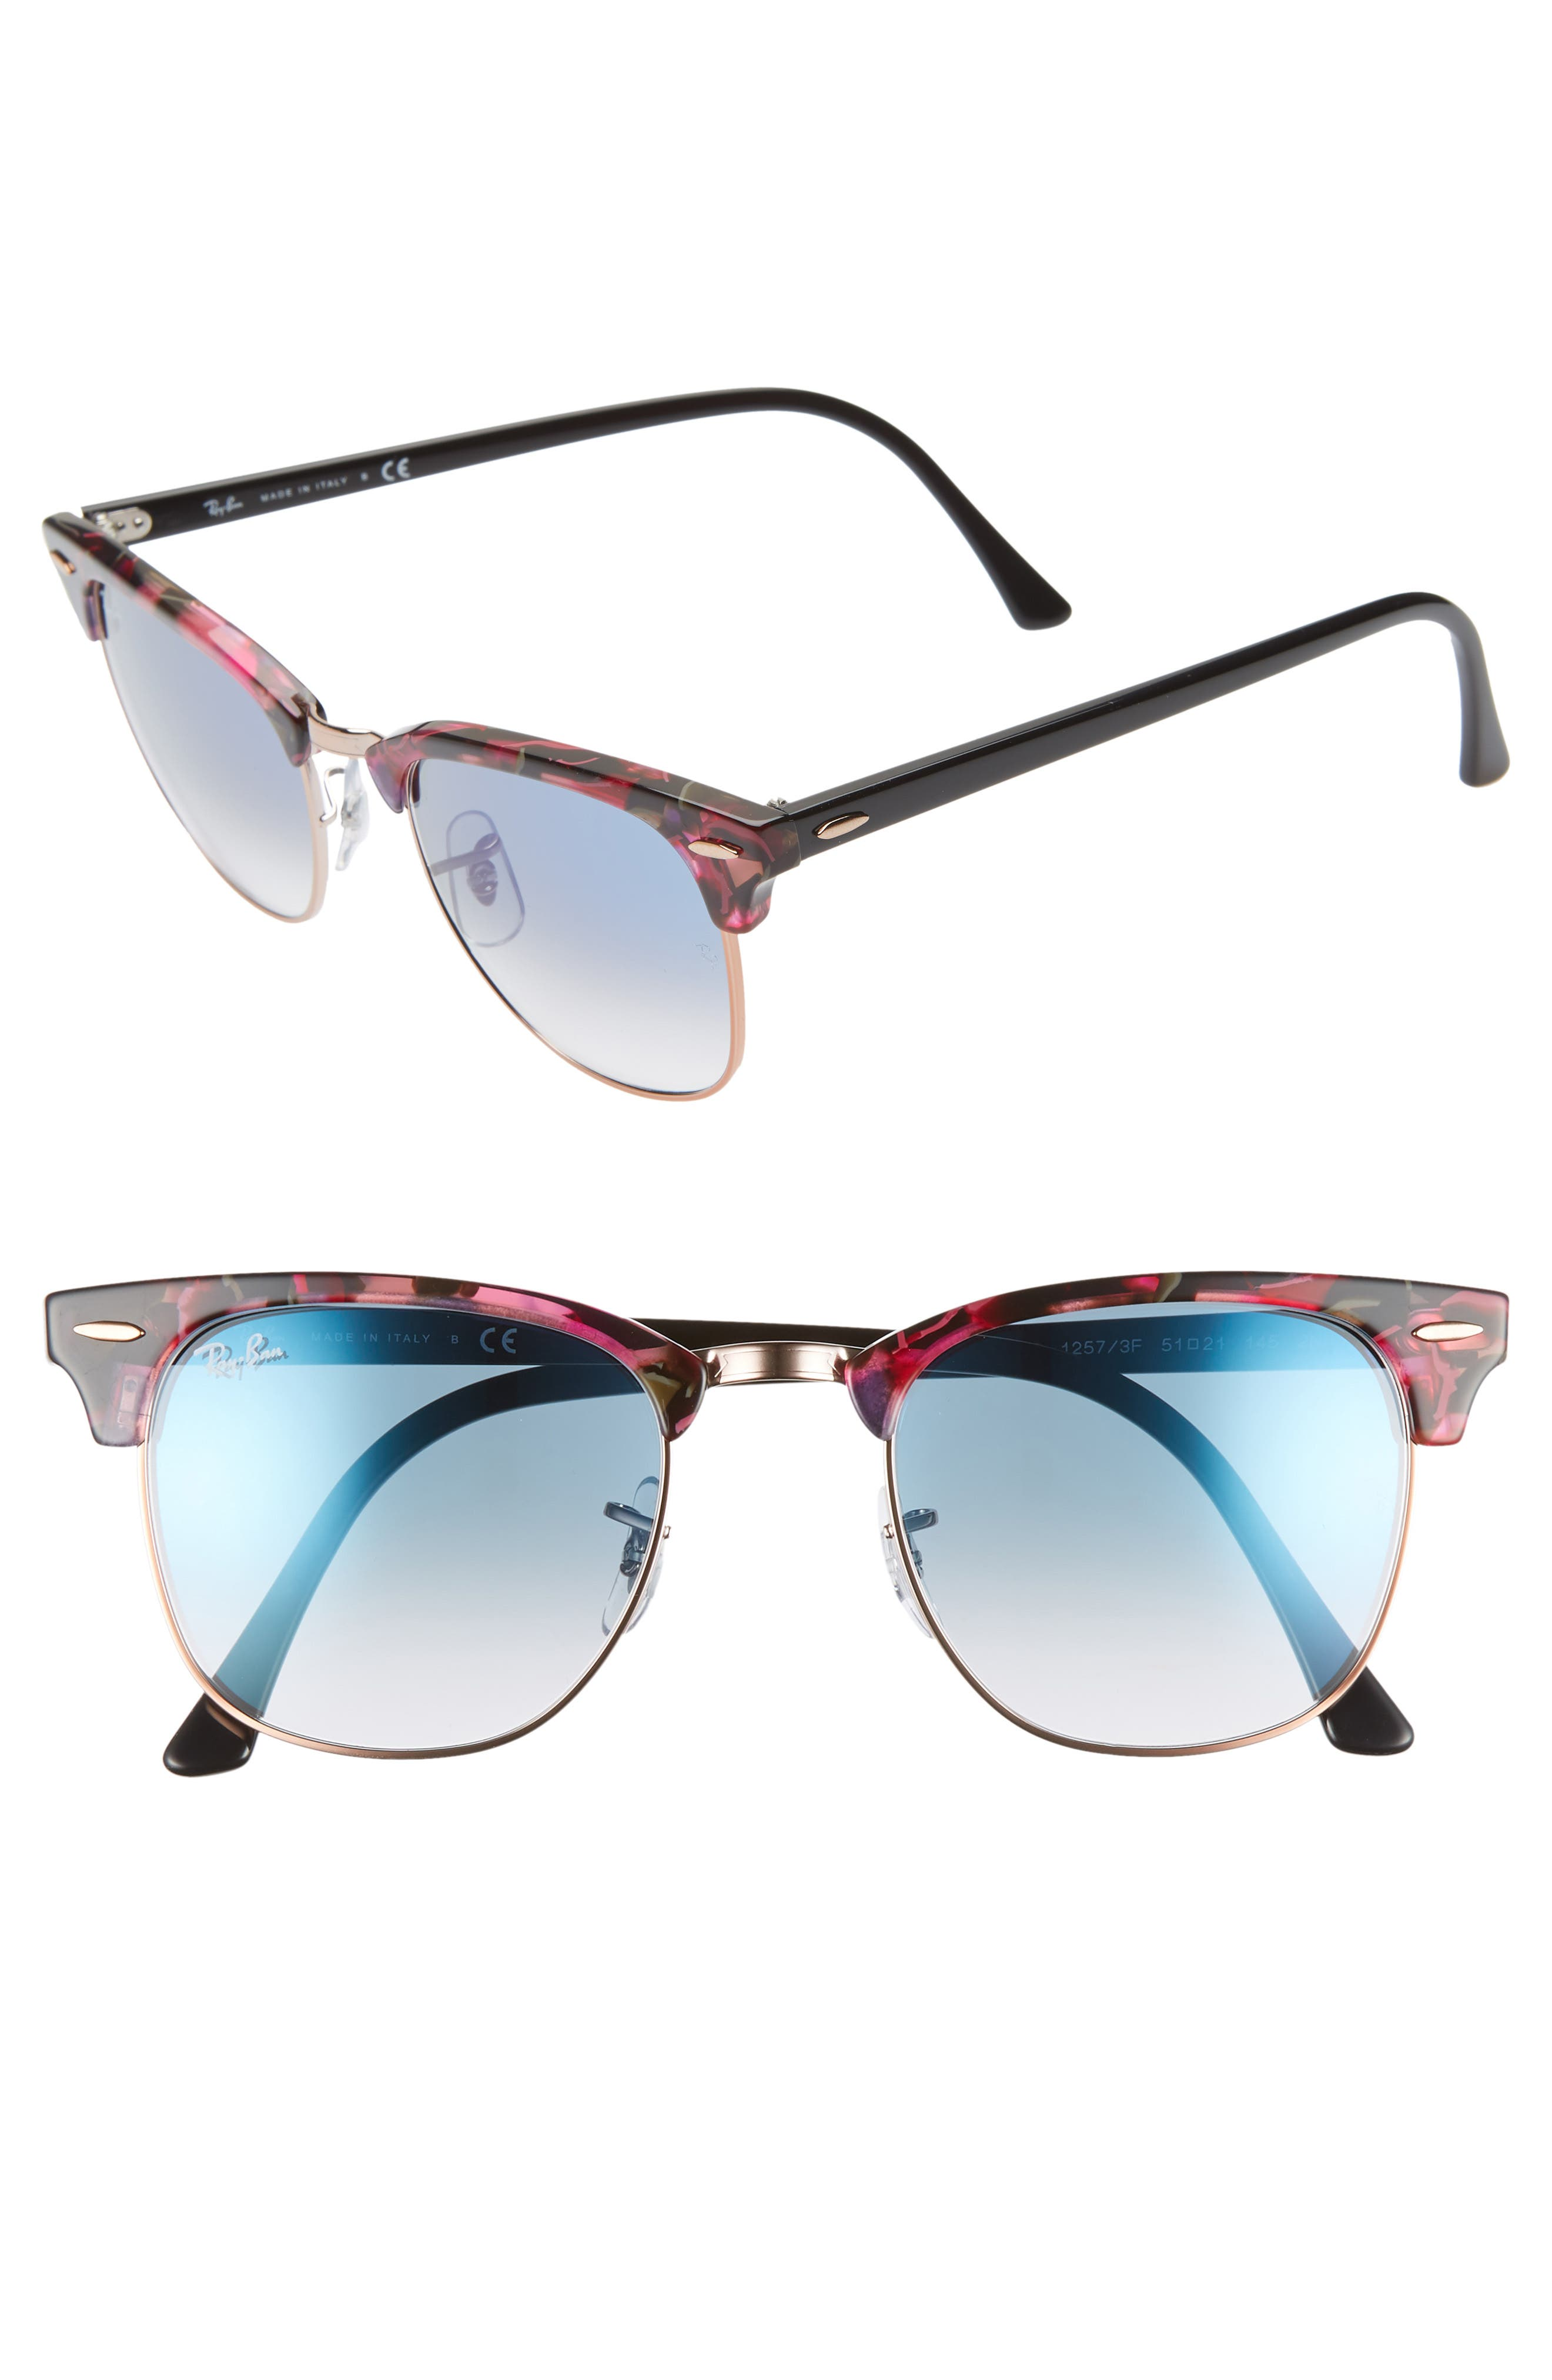 Ray-Ban Clubmaster 51Mm Gradient Sunglasses - Grey/ Violet Gradient